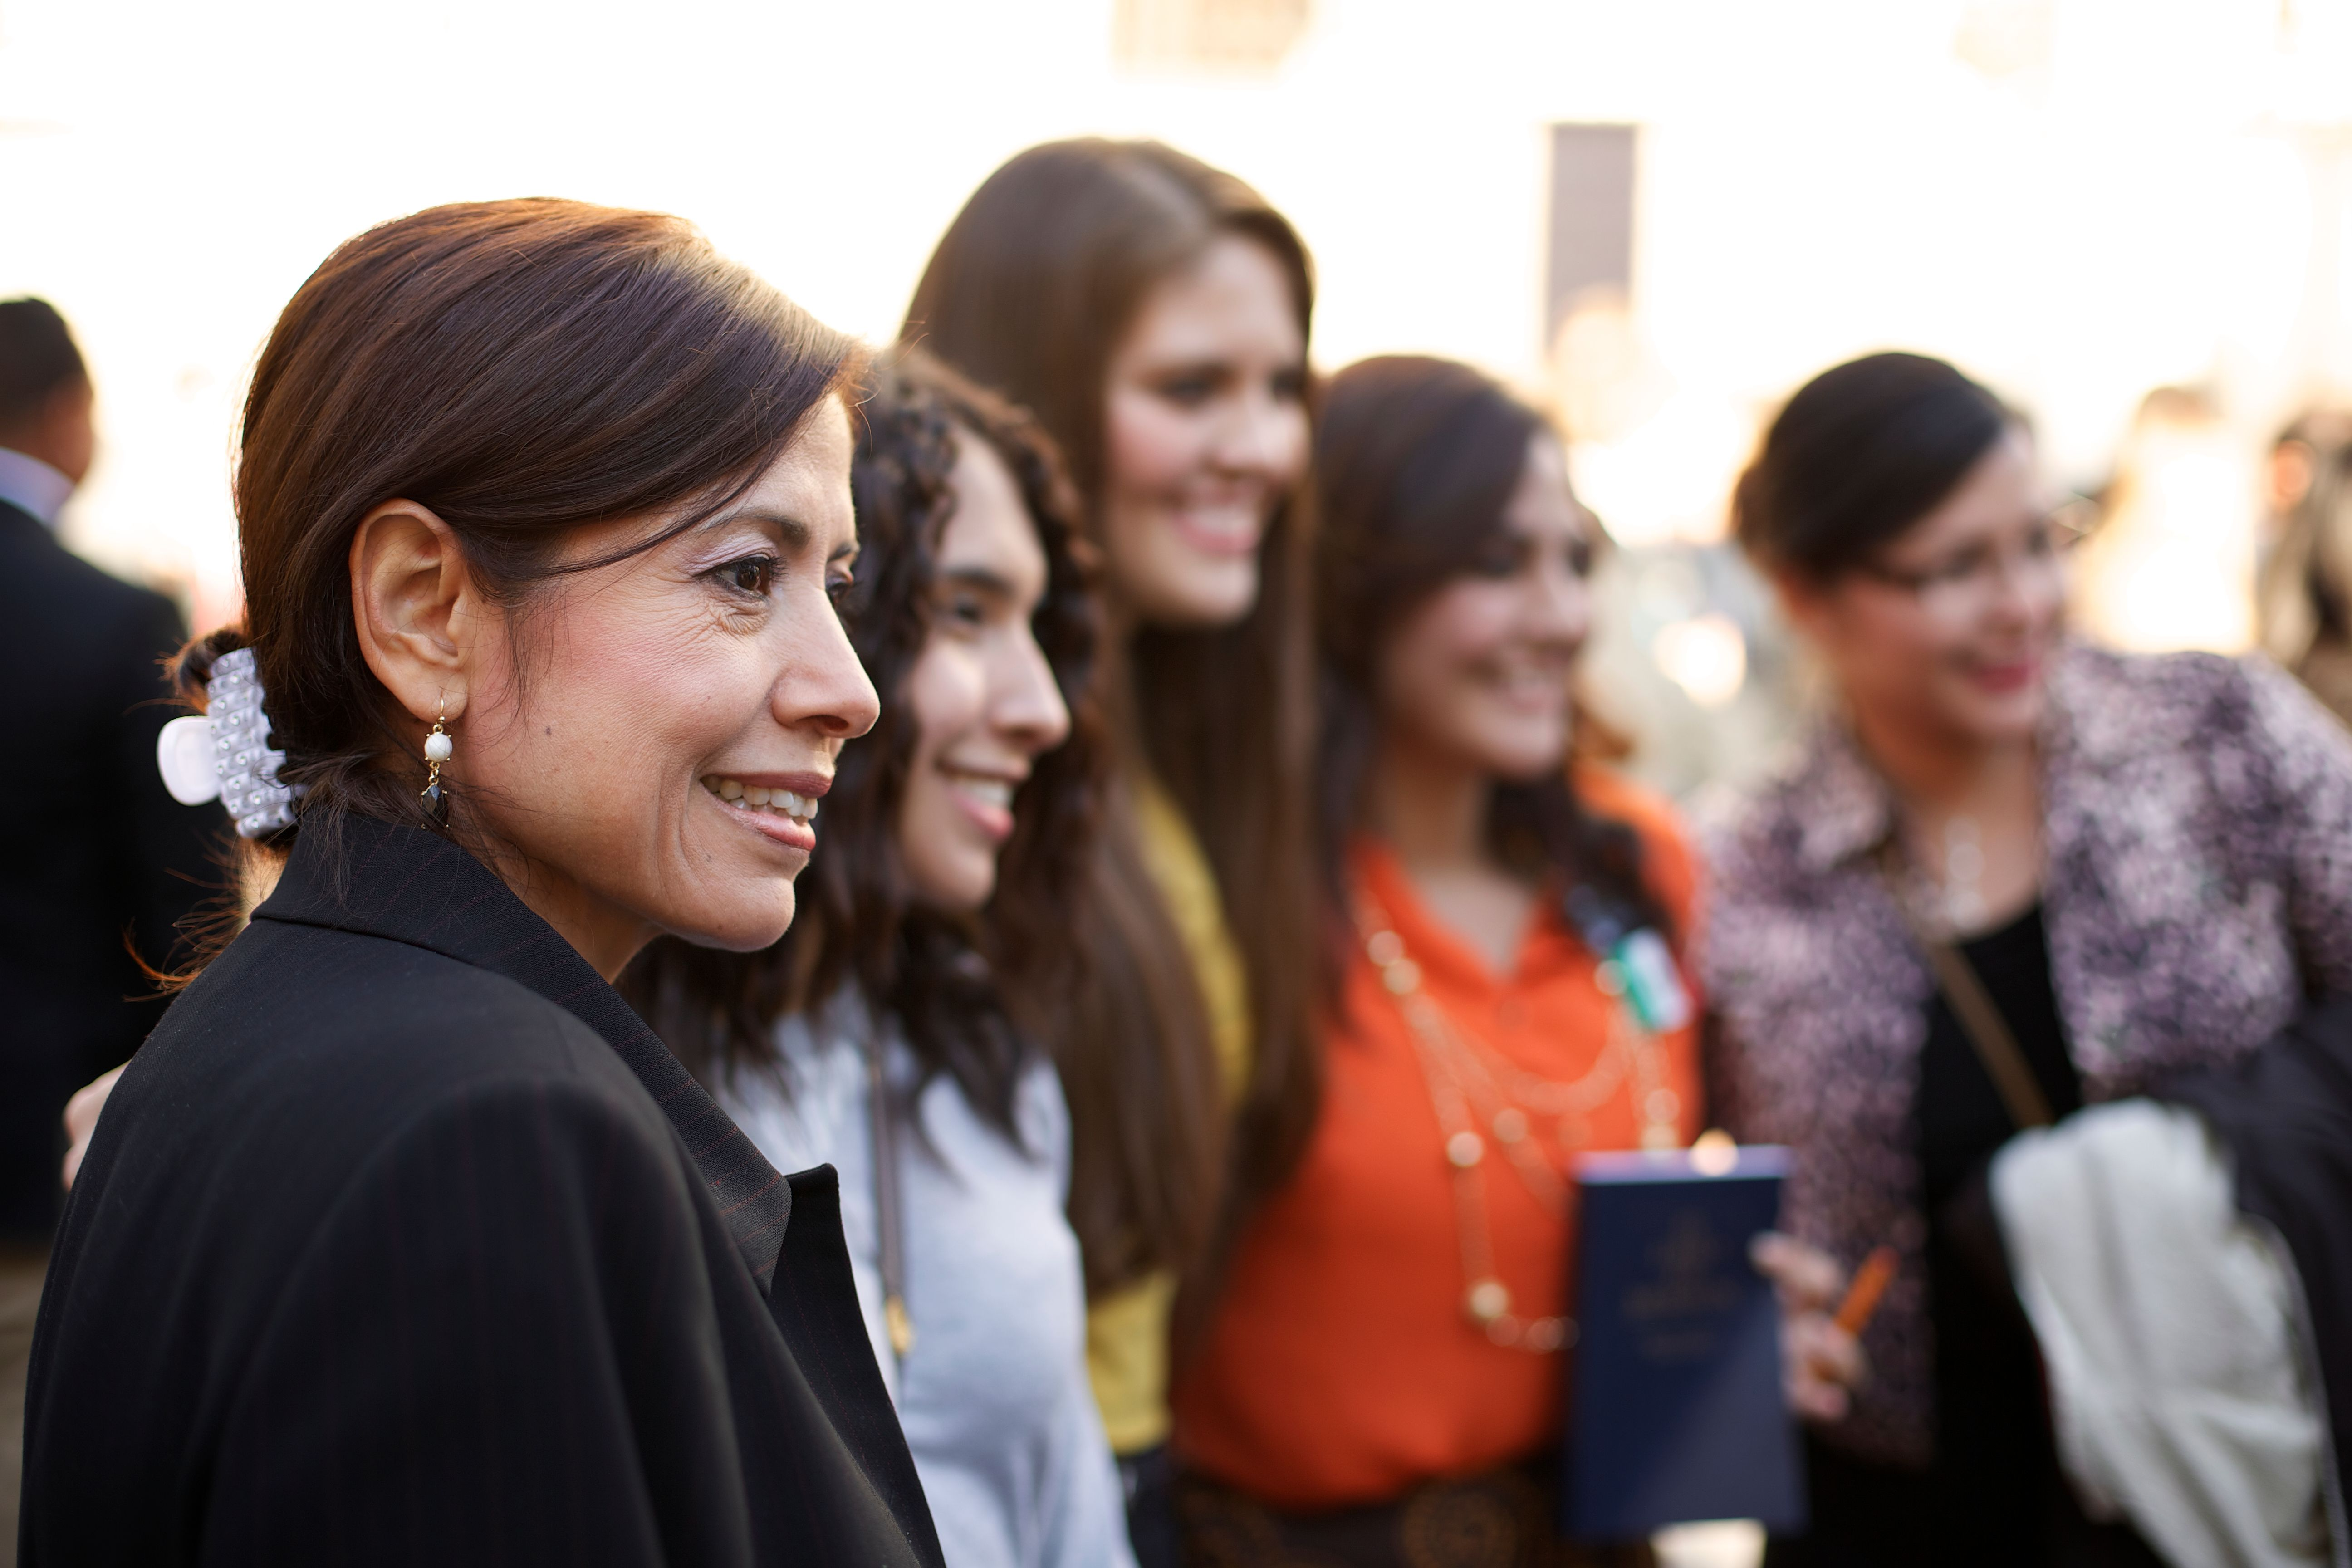 A woman standing in a group with other women outside the Conference Center.